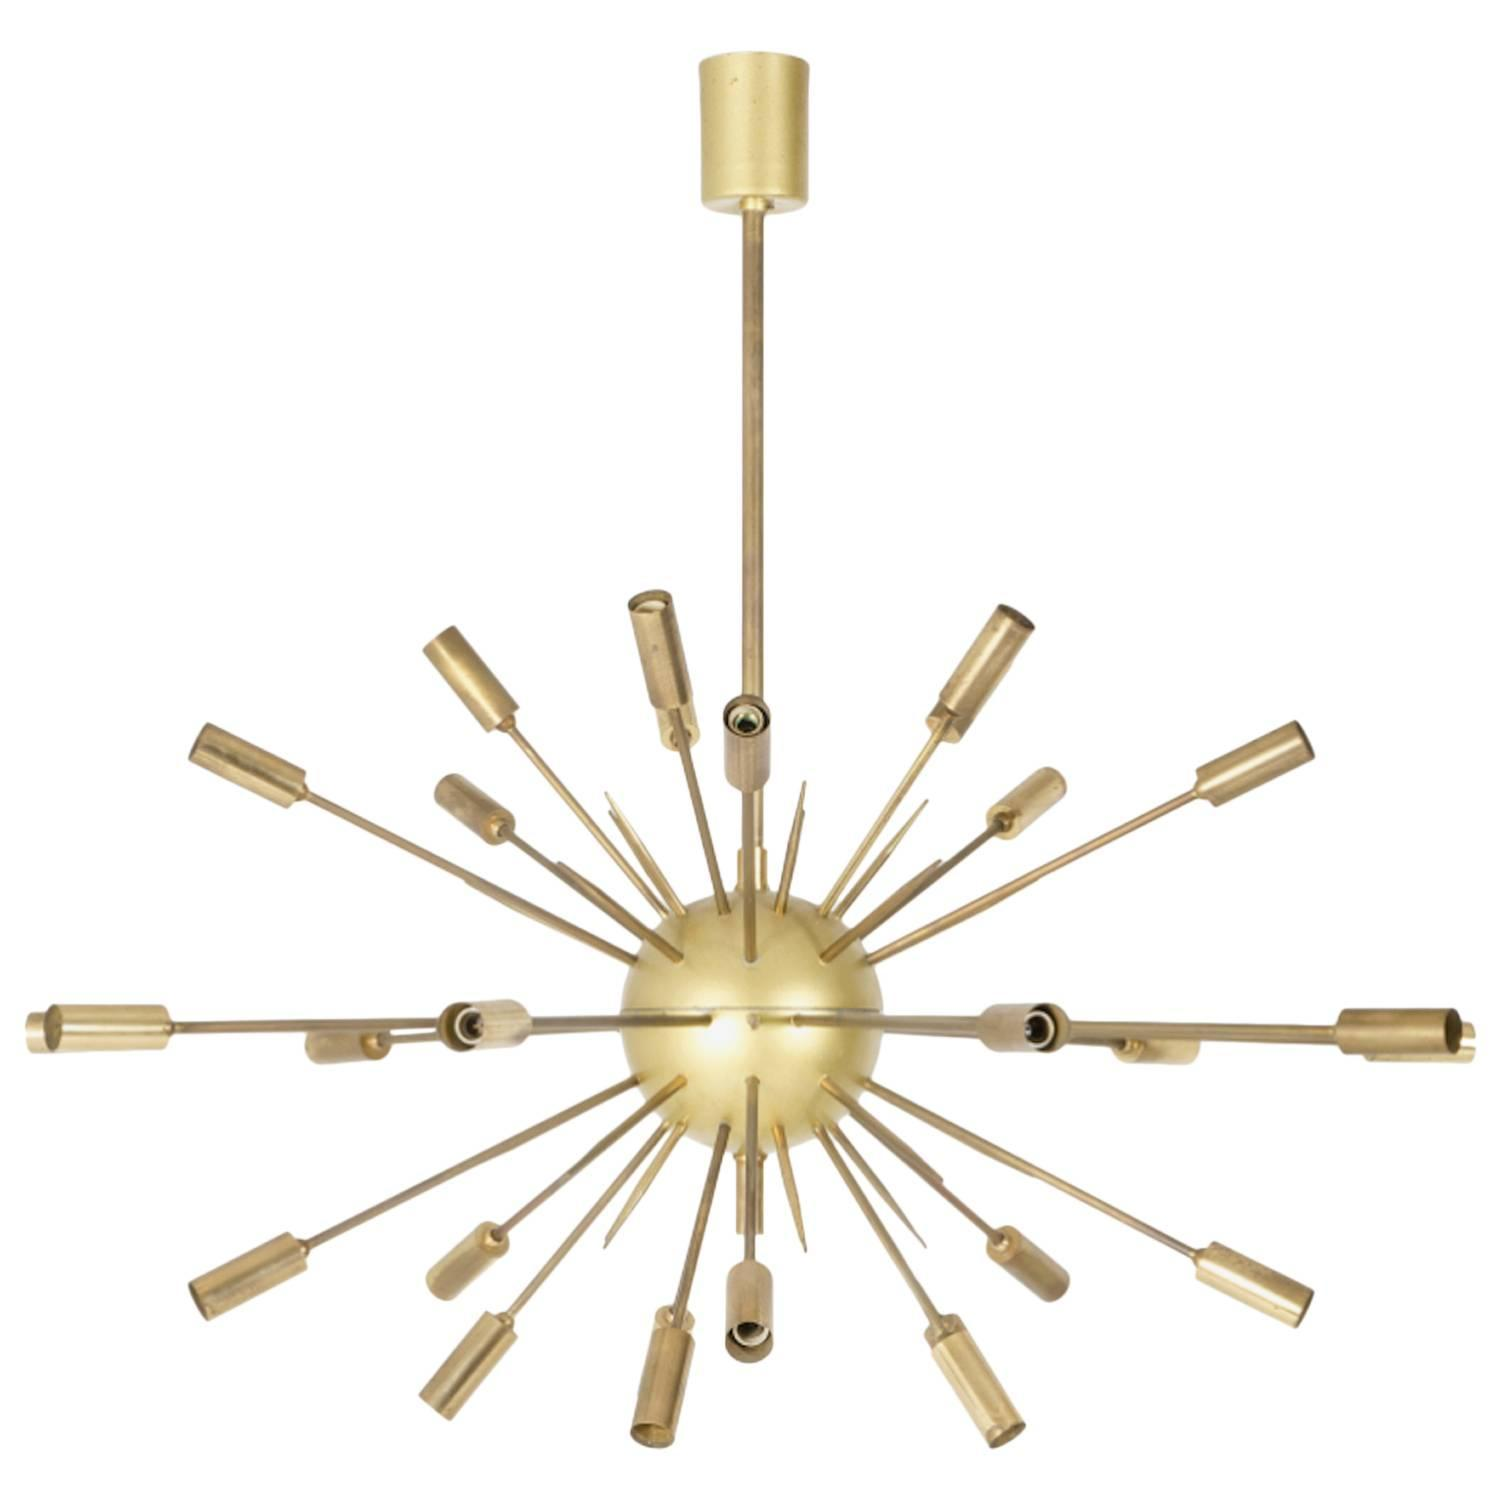 original stilnovo sputnik chandelier at 1stdibs. Black Bedroom Furniture Sets. Home Design Ideas